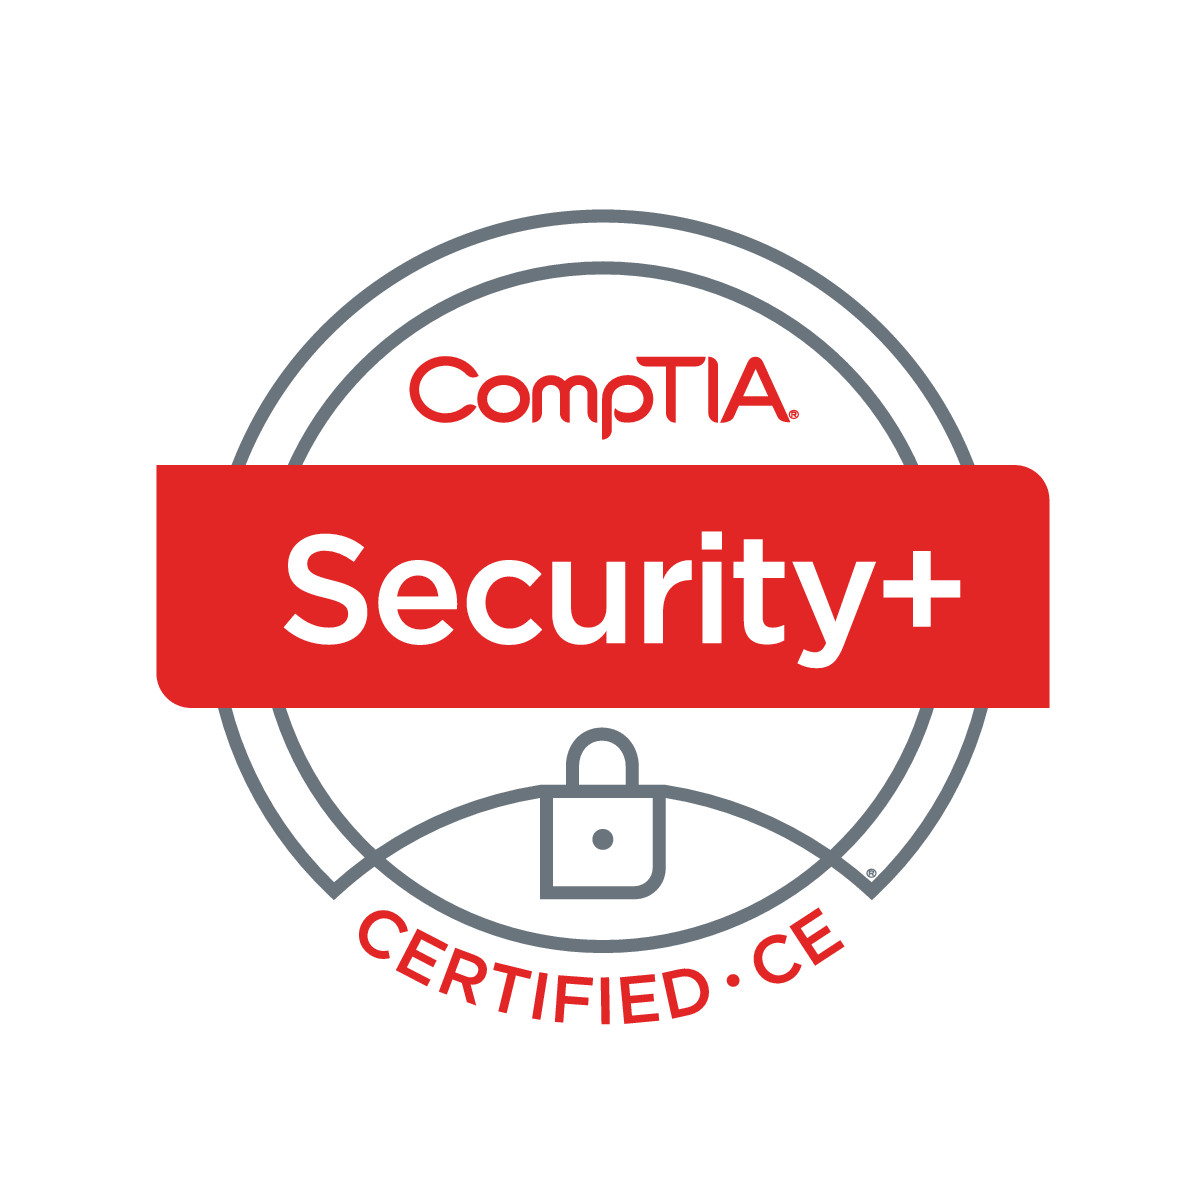 Caskey Coding - CompTIA Security+ Certified